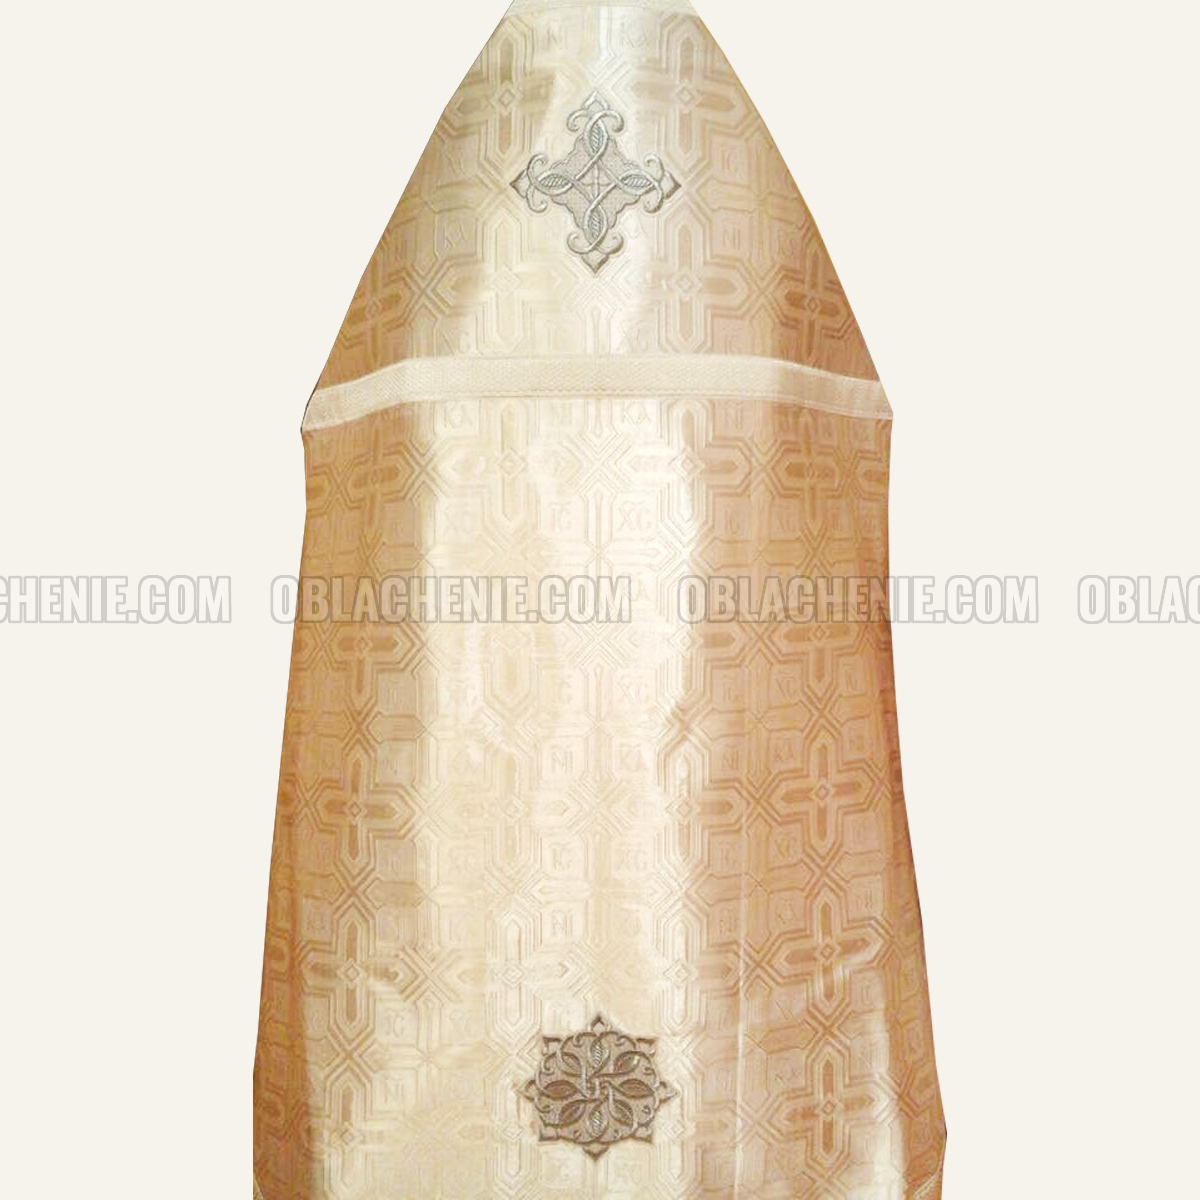 Priest's vestments 10112